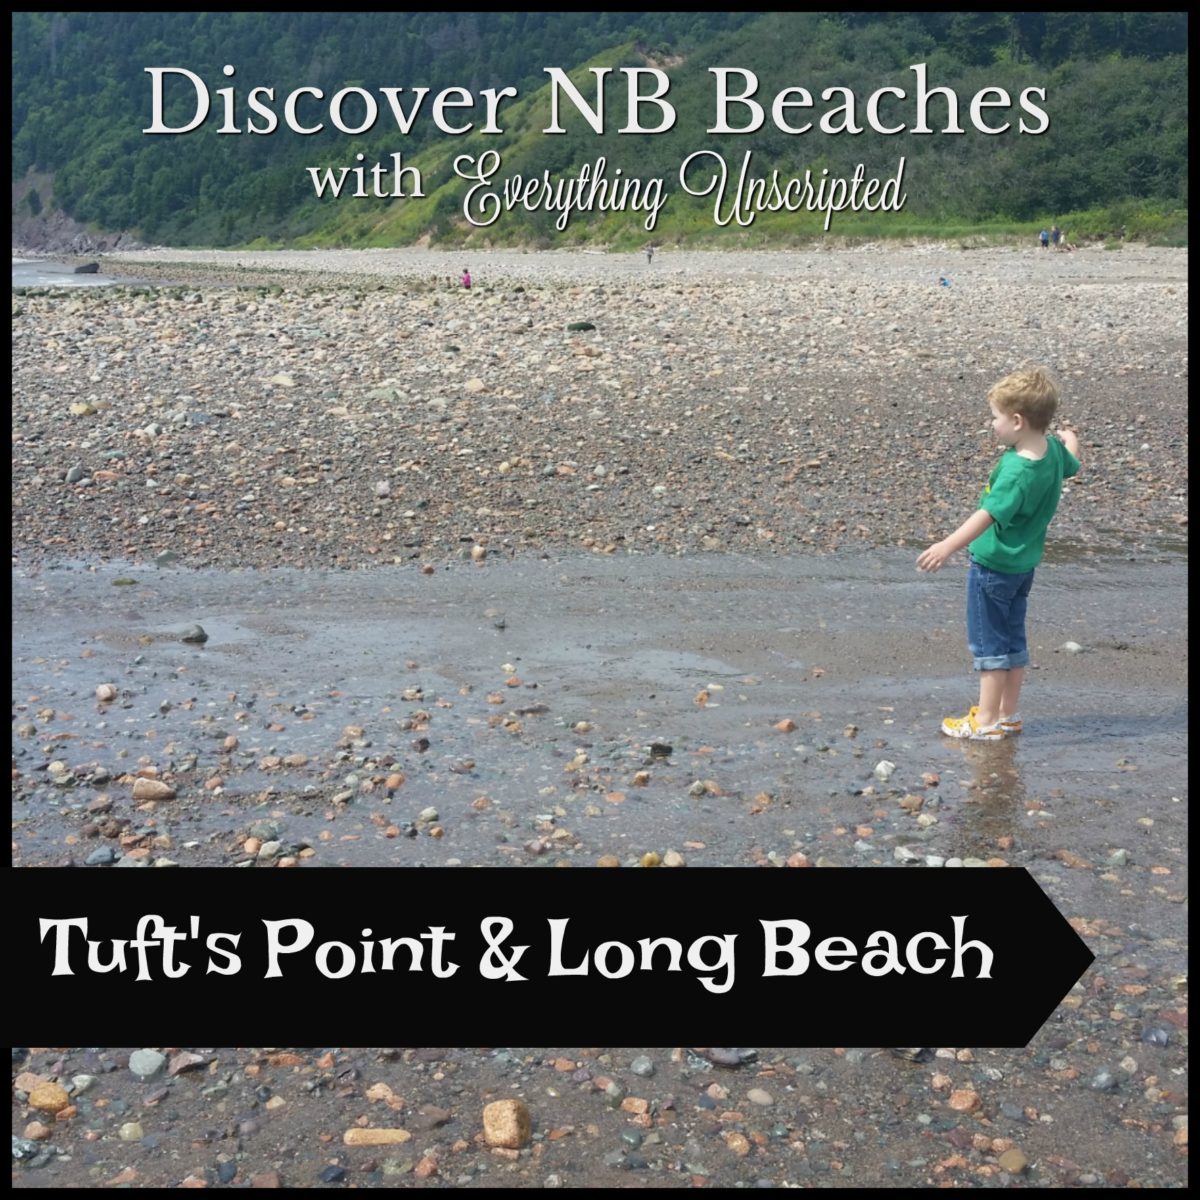 Discover NB Beaches – Tuft's Point & Long Beach